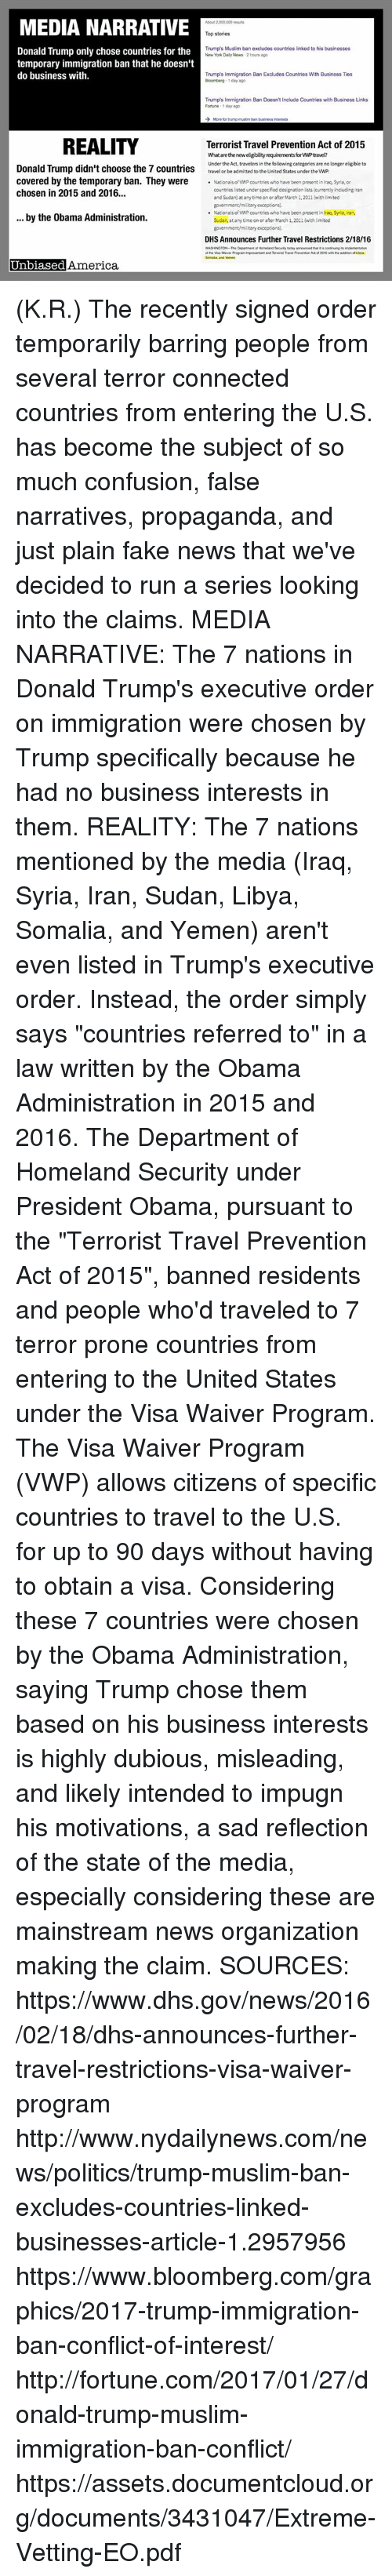 wpp: MEDIA NARRATIVE  Donald Trump only chose countries for the  temporary immigration ban that he doesn't  do business with  REALITY  Donald Trump didn't choose the 7 countries  covered by the temporary ban. They were  chosen in 2015 and 2016...  by the Obama Administration.  Unbiased America  About 2,000,000 results  Top stories  Trump's Muslim ban excludes countries linked to his businesses  New York Daily News 2hours ago  Trump's Immigration Ban Excludes Countries With Business Ties  Bioomberg dar ago  Trump's immigration Ban Doesn't Include Countries with Business Links  Fortune 1 day ago  More for trump muslim ban butiness interests  Terrorist Travel Prevention Act of 2015  What are the new  requirements forwPtravel?  Under the Act, travelers in the following categories are no longer eligible to  travel or be admitted tothe United States under the VWP:  Nationals of WPP countries who have been present in lraq,Syria, or  countries listed underspecified designation lists currently including ran  and Sudan) at any time on or after March 1.2011 (with limited  government/military exceptions).  NationalsofwwP countries who have been presentin Iraq, Syria, Iran,  Sudan, at any time on or after March 1,2011 (with limited  government military exceptions)  DHS Announces Further Travel Restrictions 2/18/16  WASHINGTON-The Department Homeland soday announced that tis  connung implementation (K.R.) The recently signed order temporarily barring people from several terror connected countries from entering the U.S. has become the subject of so much confusion, false narratives, propaganda, and just plain fake news that we've decided to run a series looking into the claims.  MEDIA NARRATIVE: The 7 nations in Donald Trump's executive order on immigration were chosen by Trump specifically because he had no business interests in them.  REALITY:  The 7 nations mentioned by the media (Iraq, Syria, Iran, Sudan, Libya, Somalia, and Yemen) aren't even listed in Trump's executive order.